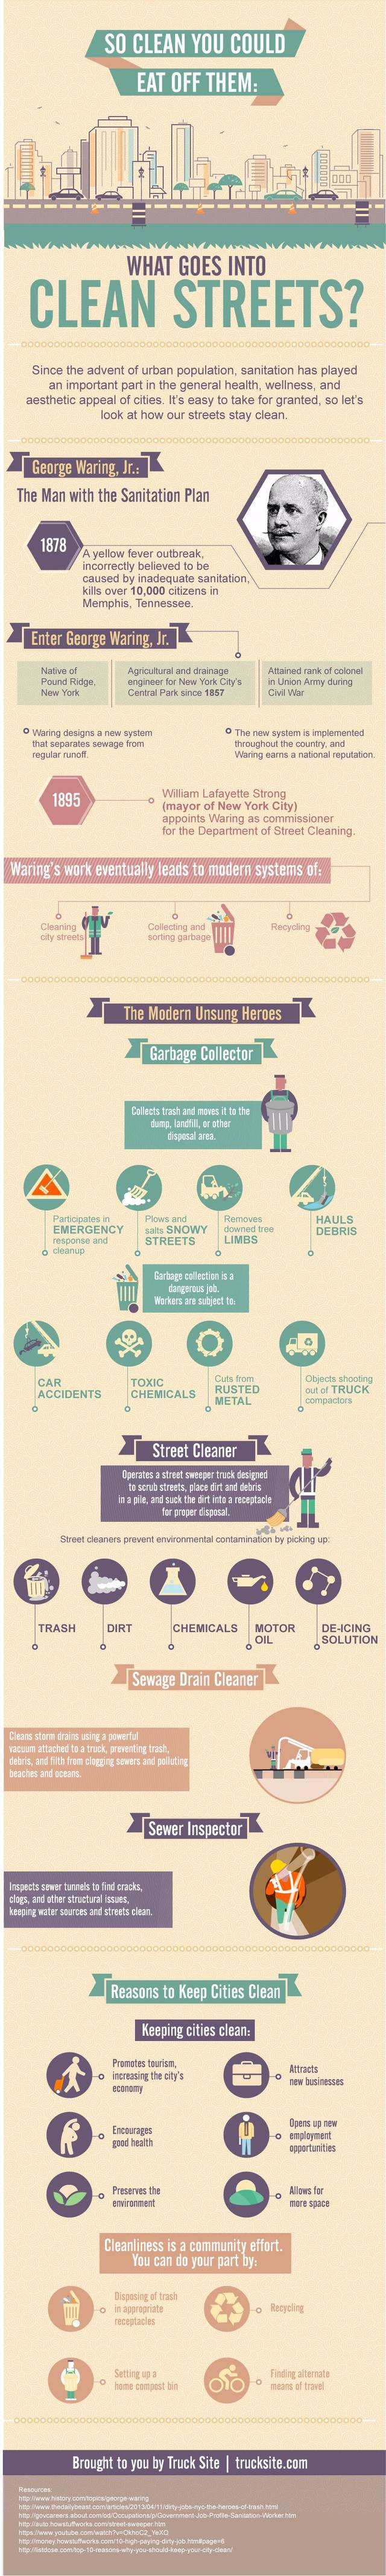 1502 graphic trucksite clean streets (1) compressed